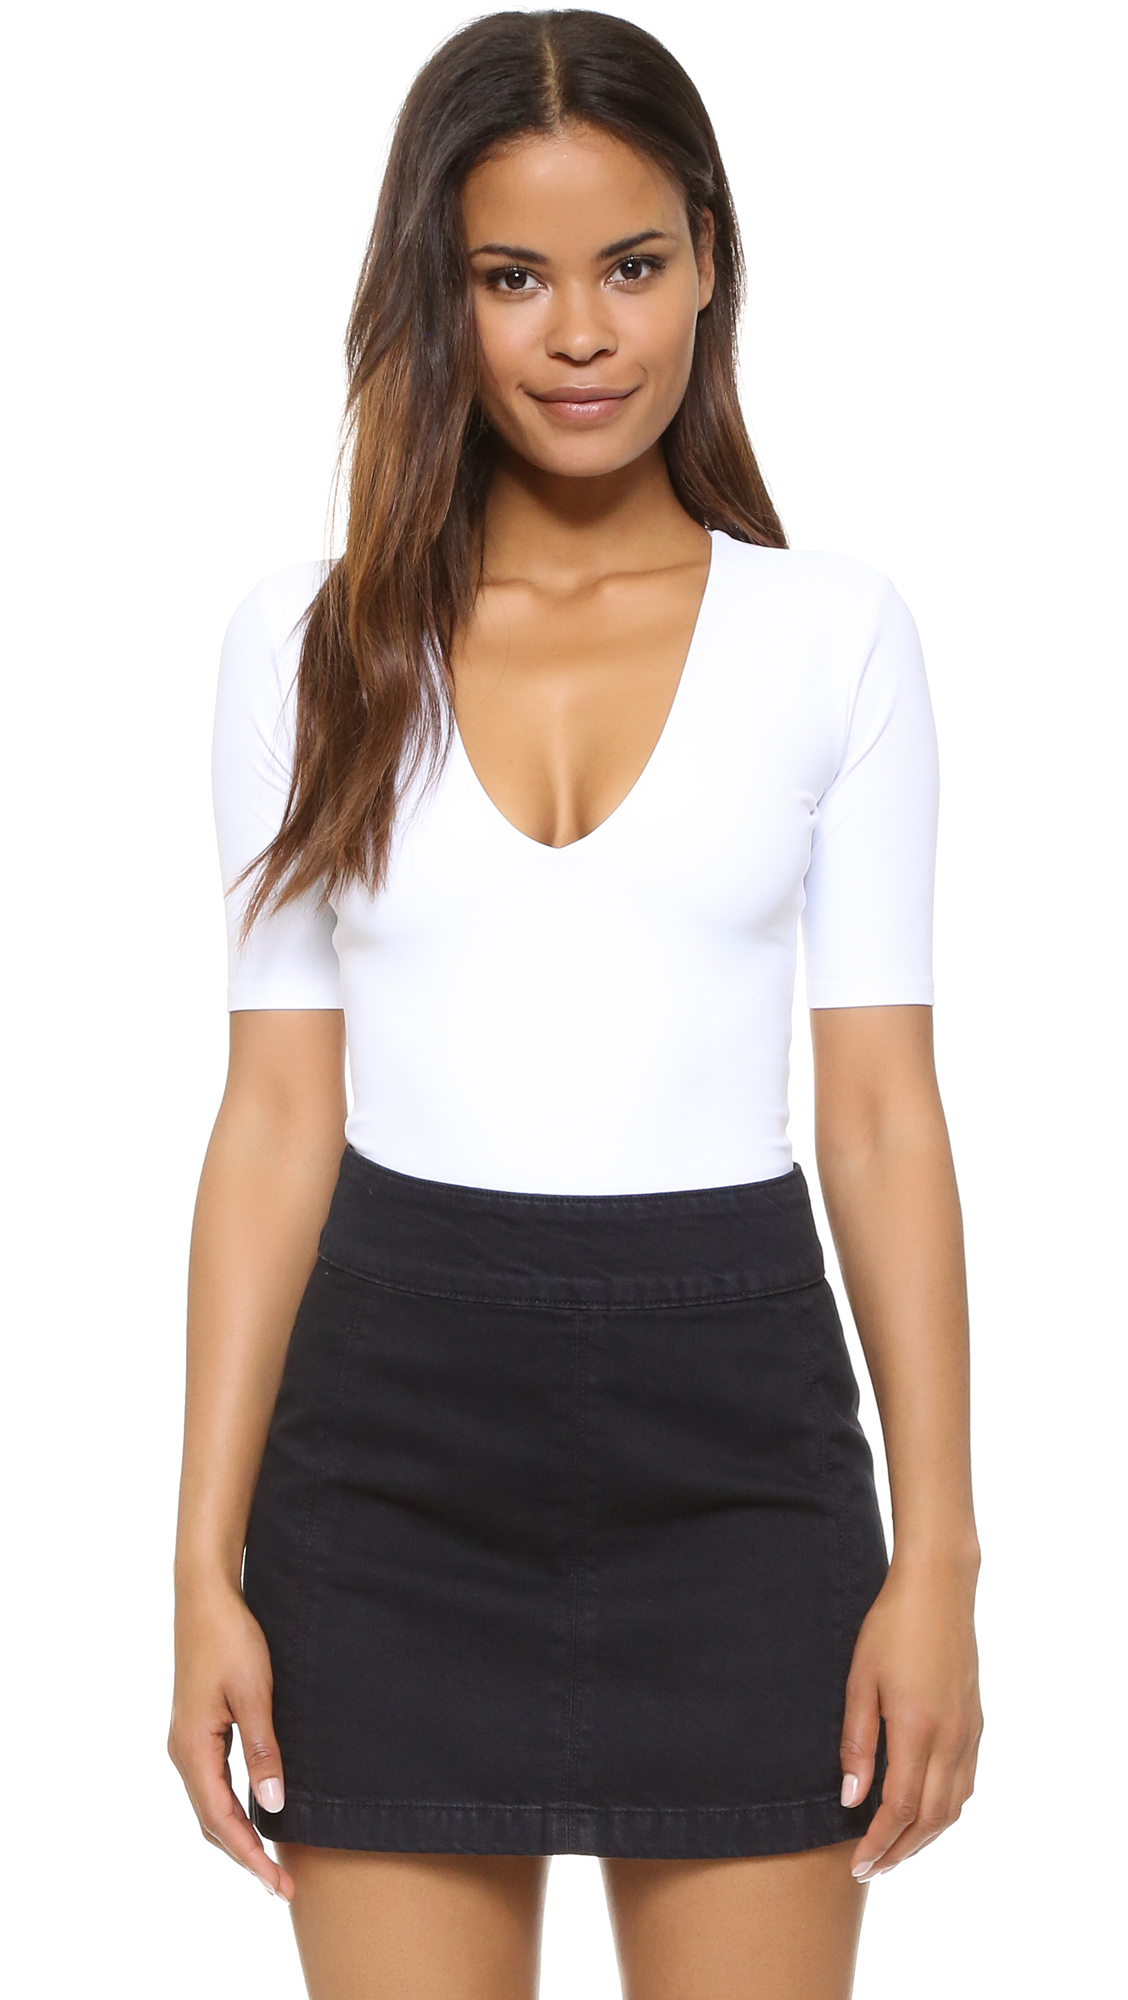 Alix Classic Collection Ludlow Thong Bodysuit - White at Shopbop